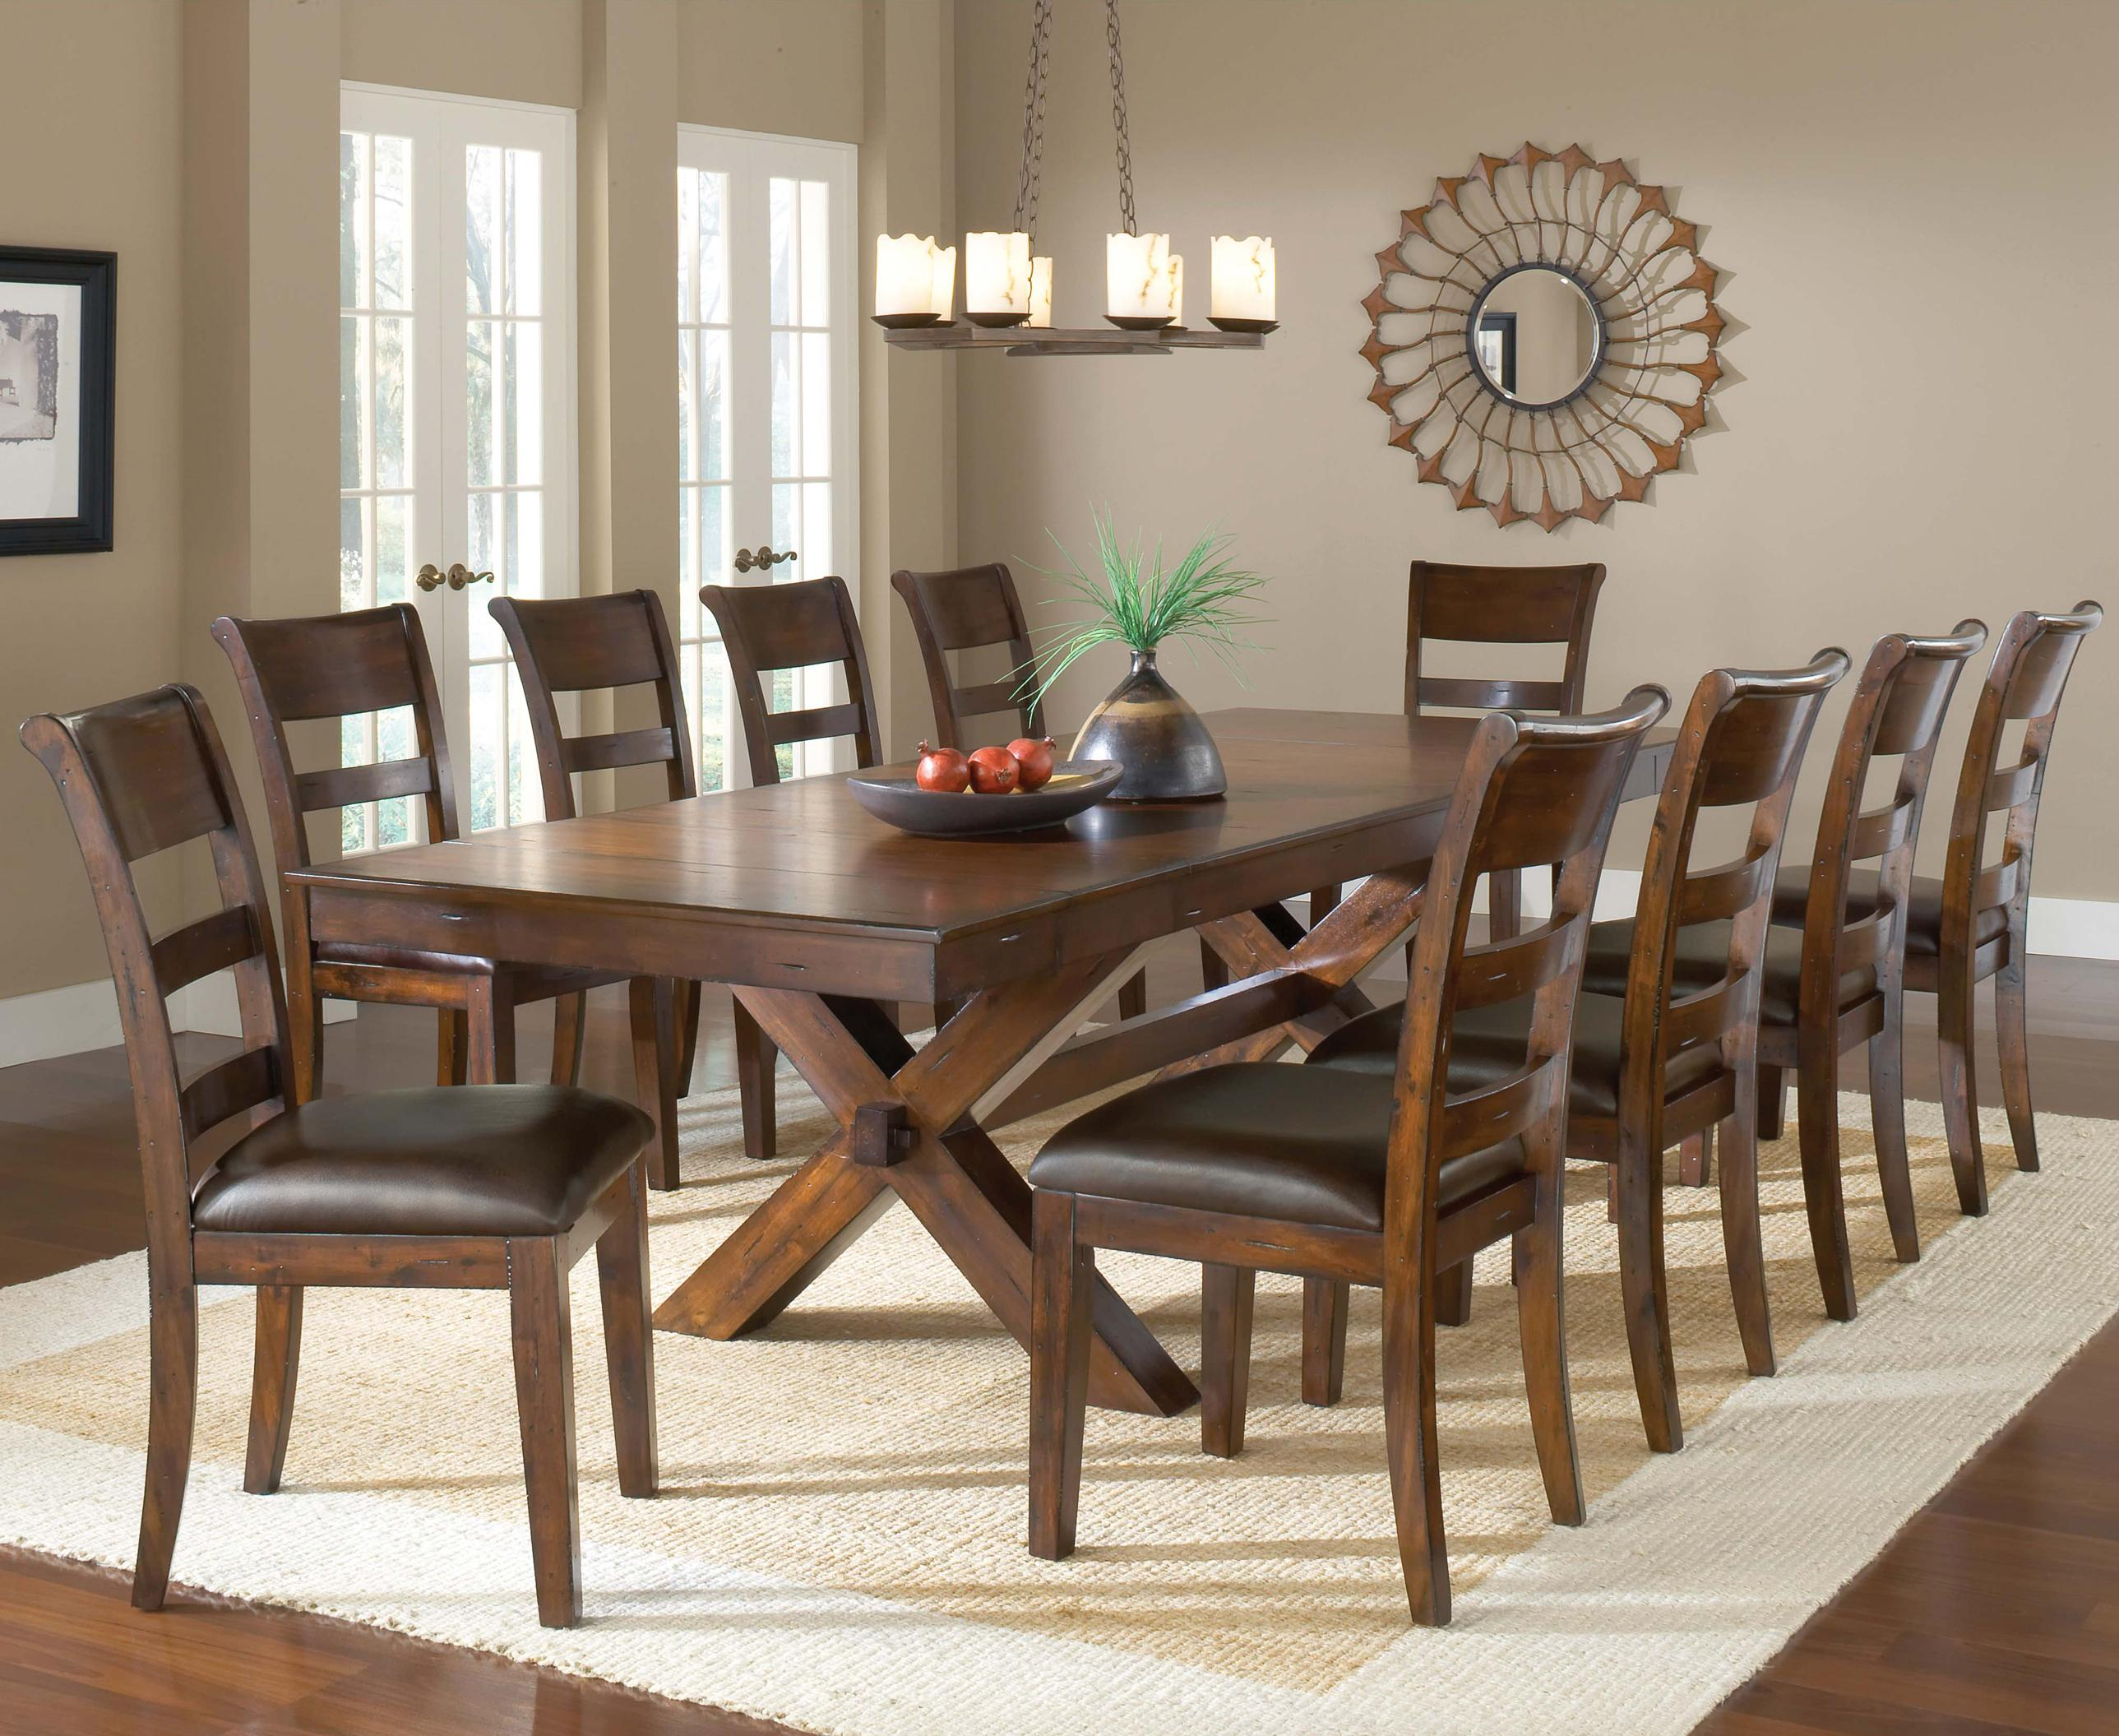 trestle dining room tables   Park Avenue Trestle Dining Table w/ 2 Leaves by Hillsdale ...